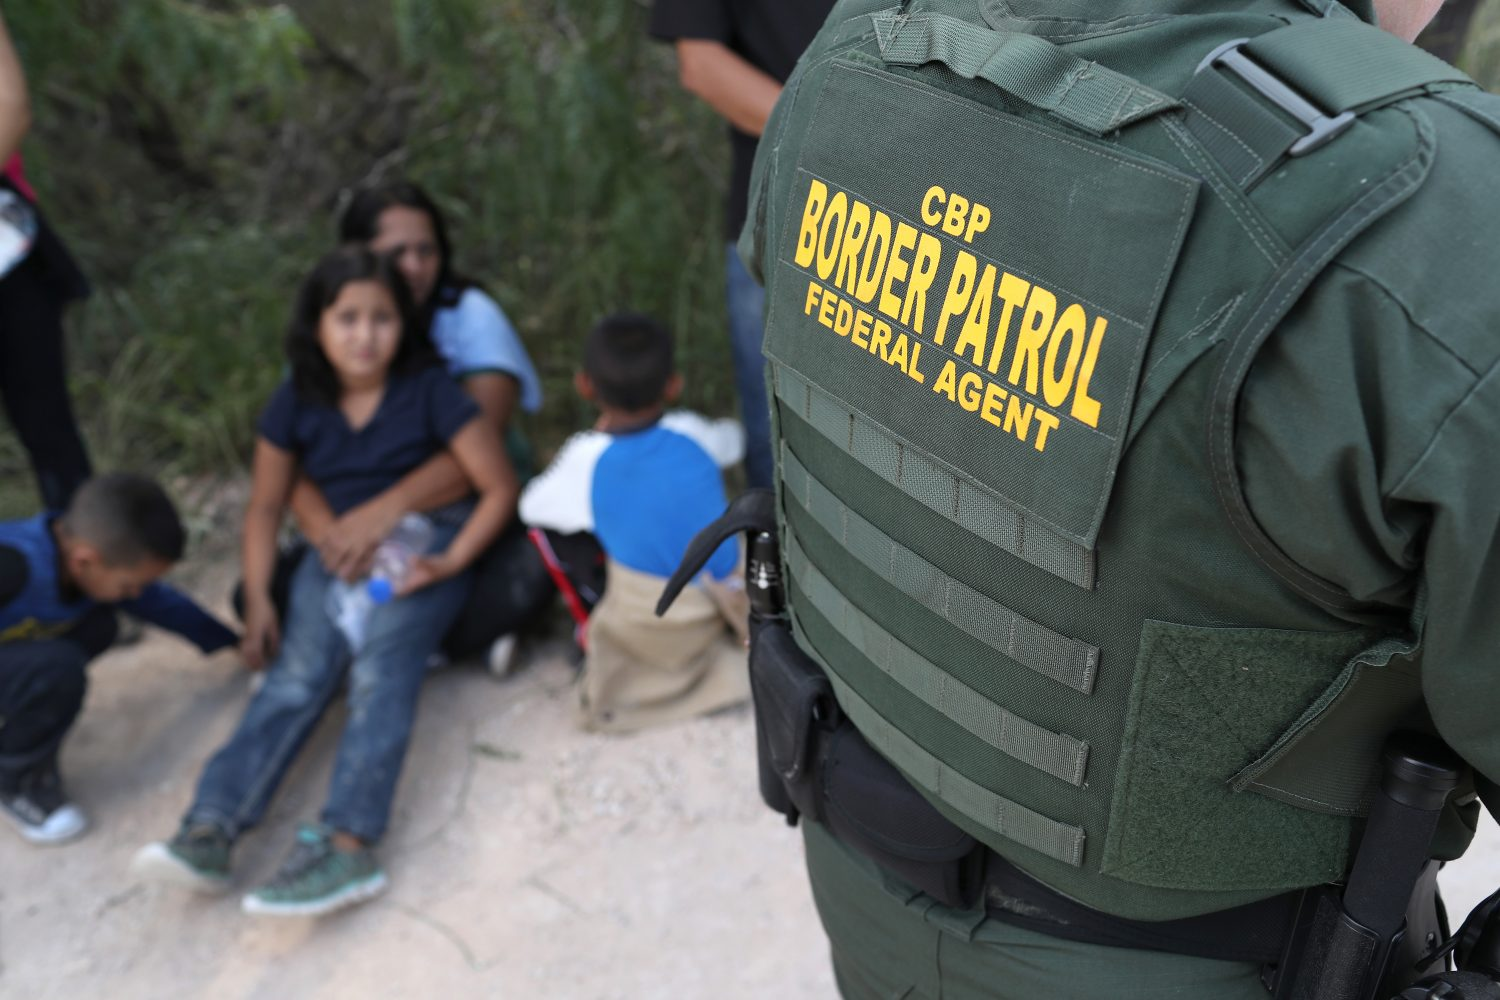 A 7-Year-Old Died in CBP Custody & the Government's Official Response Is Shameful